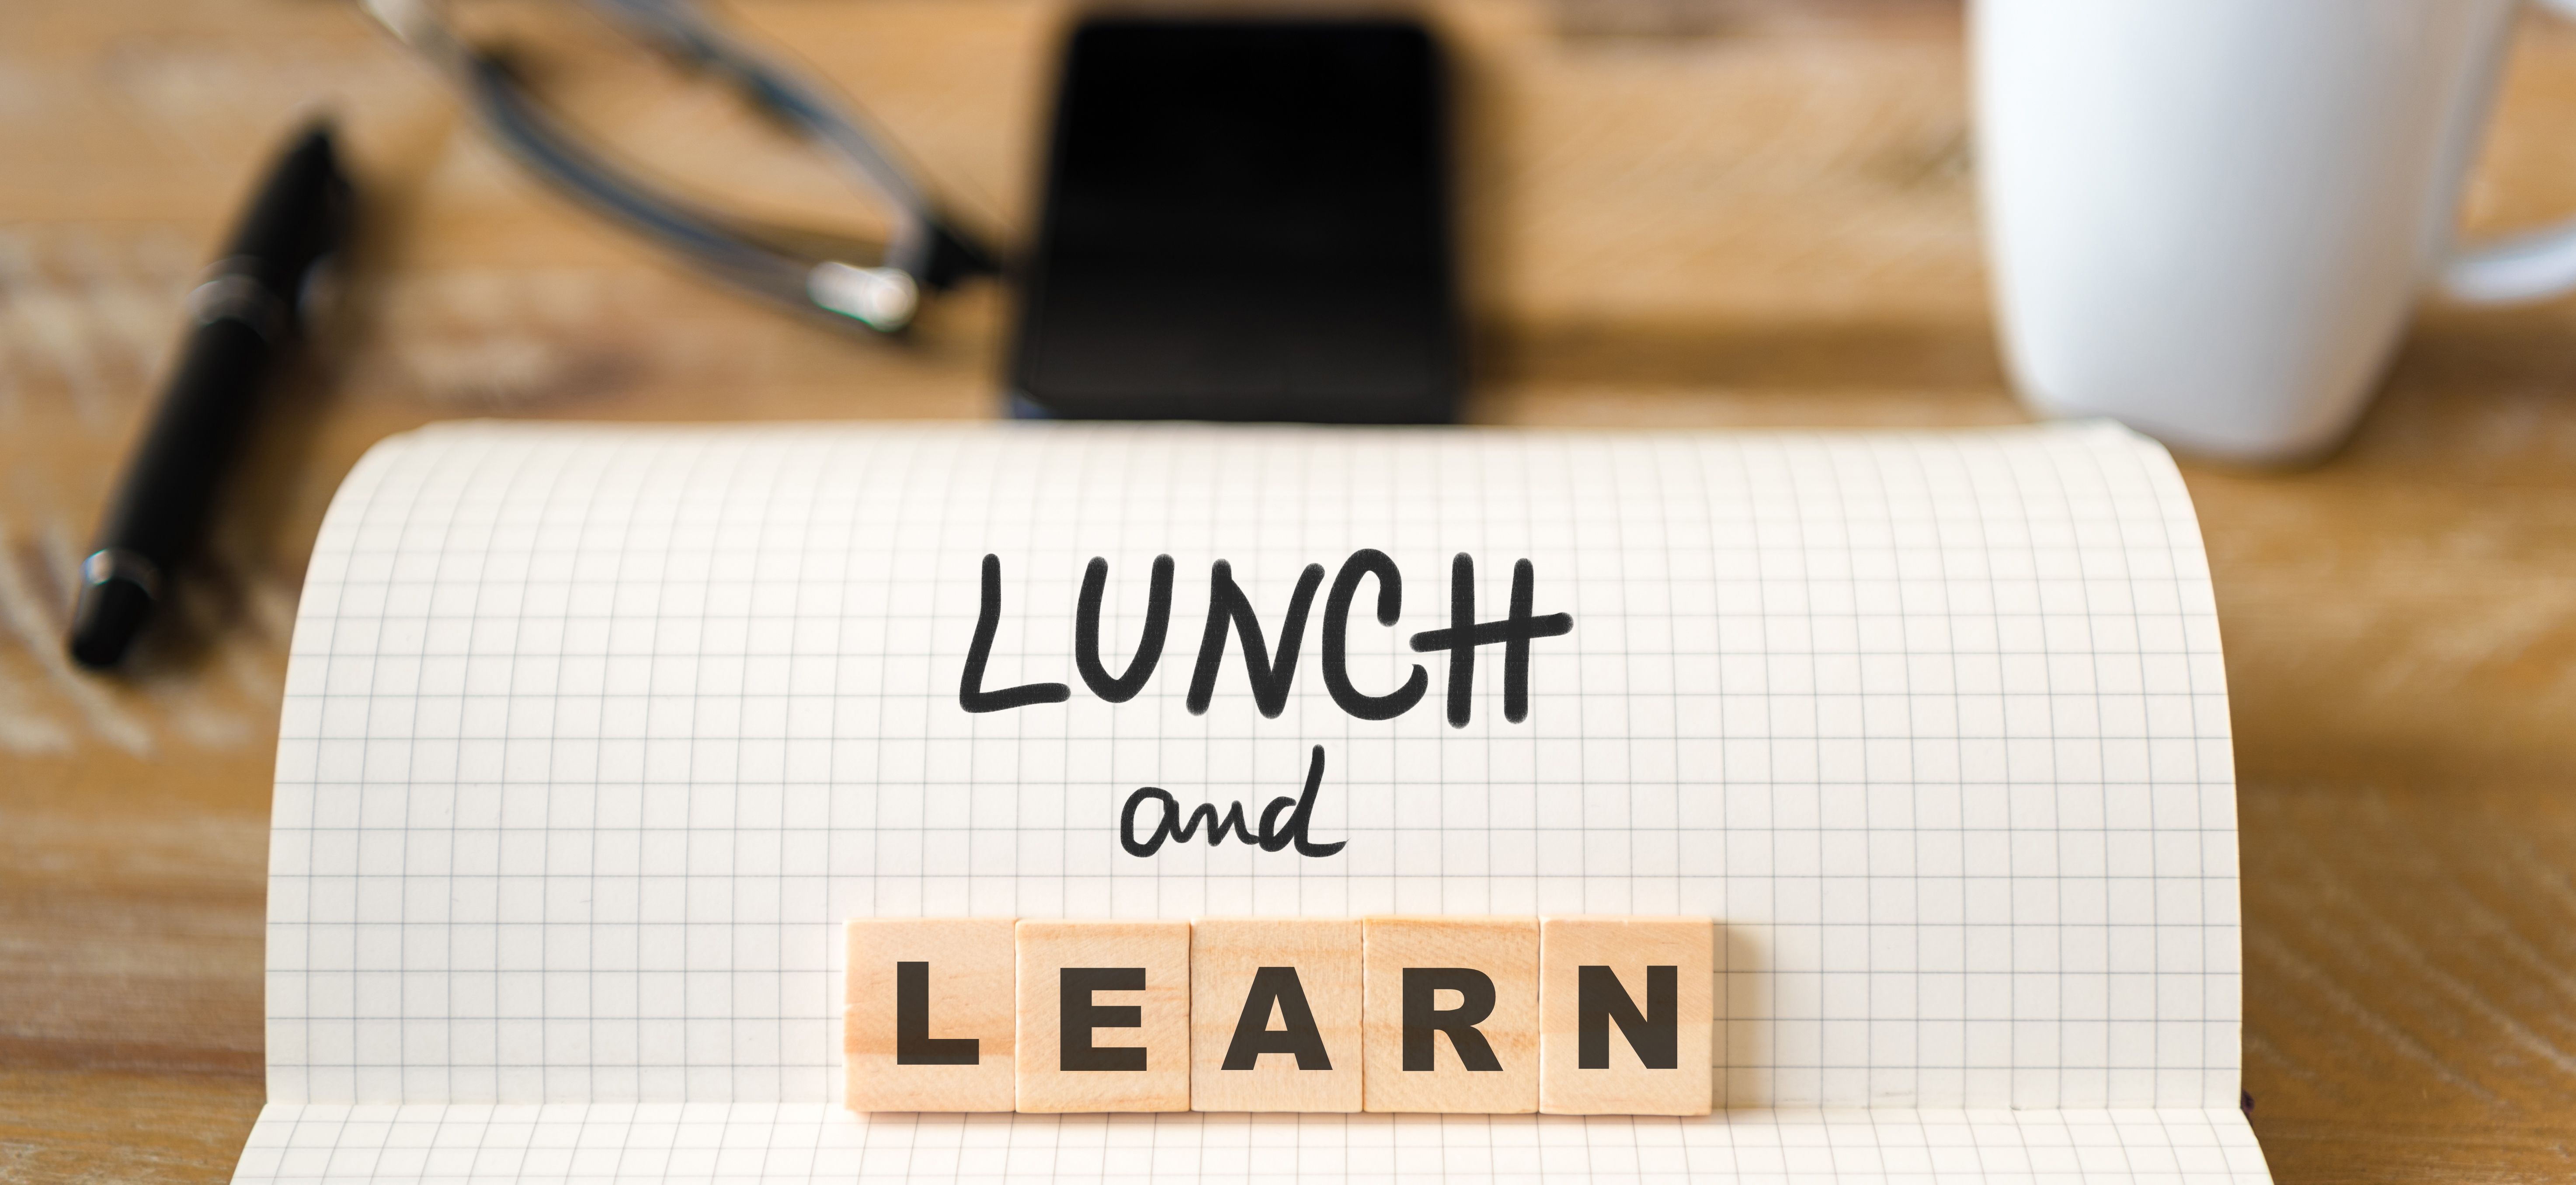 Lunch and Learn Desk